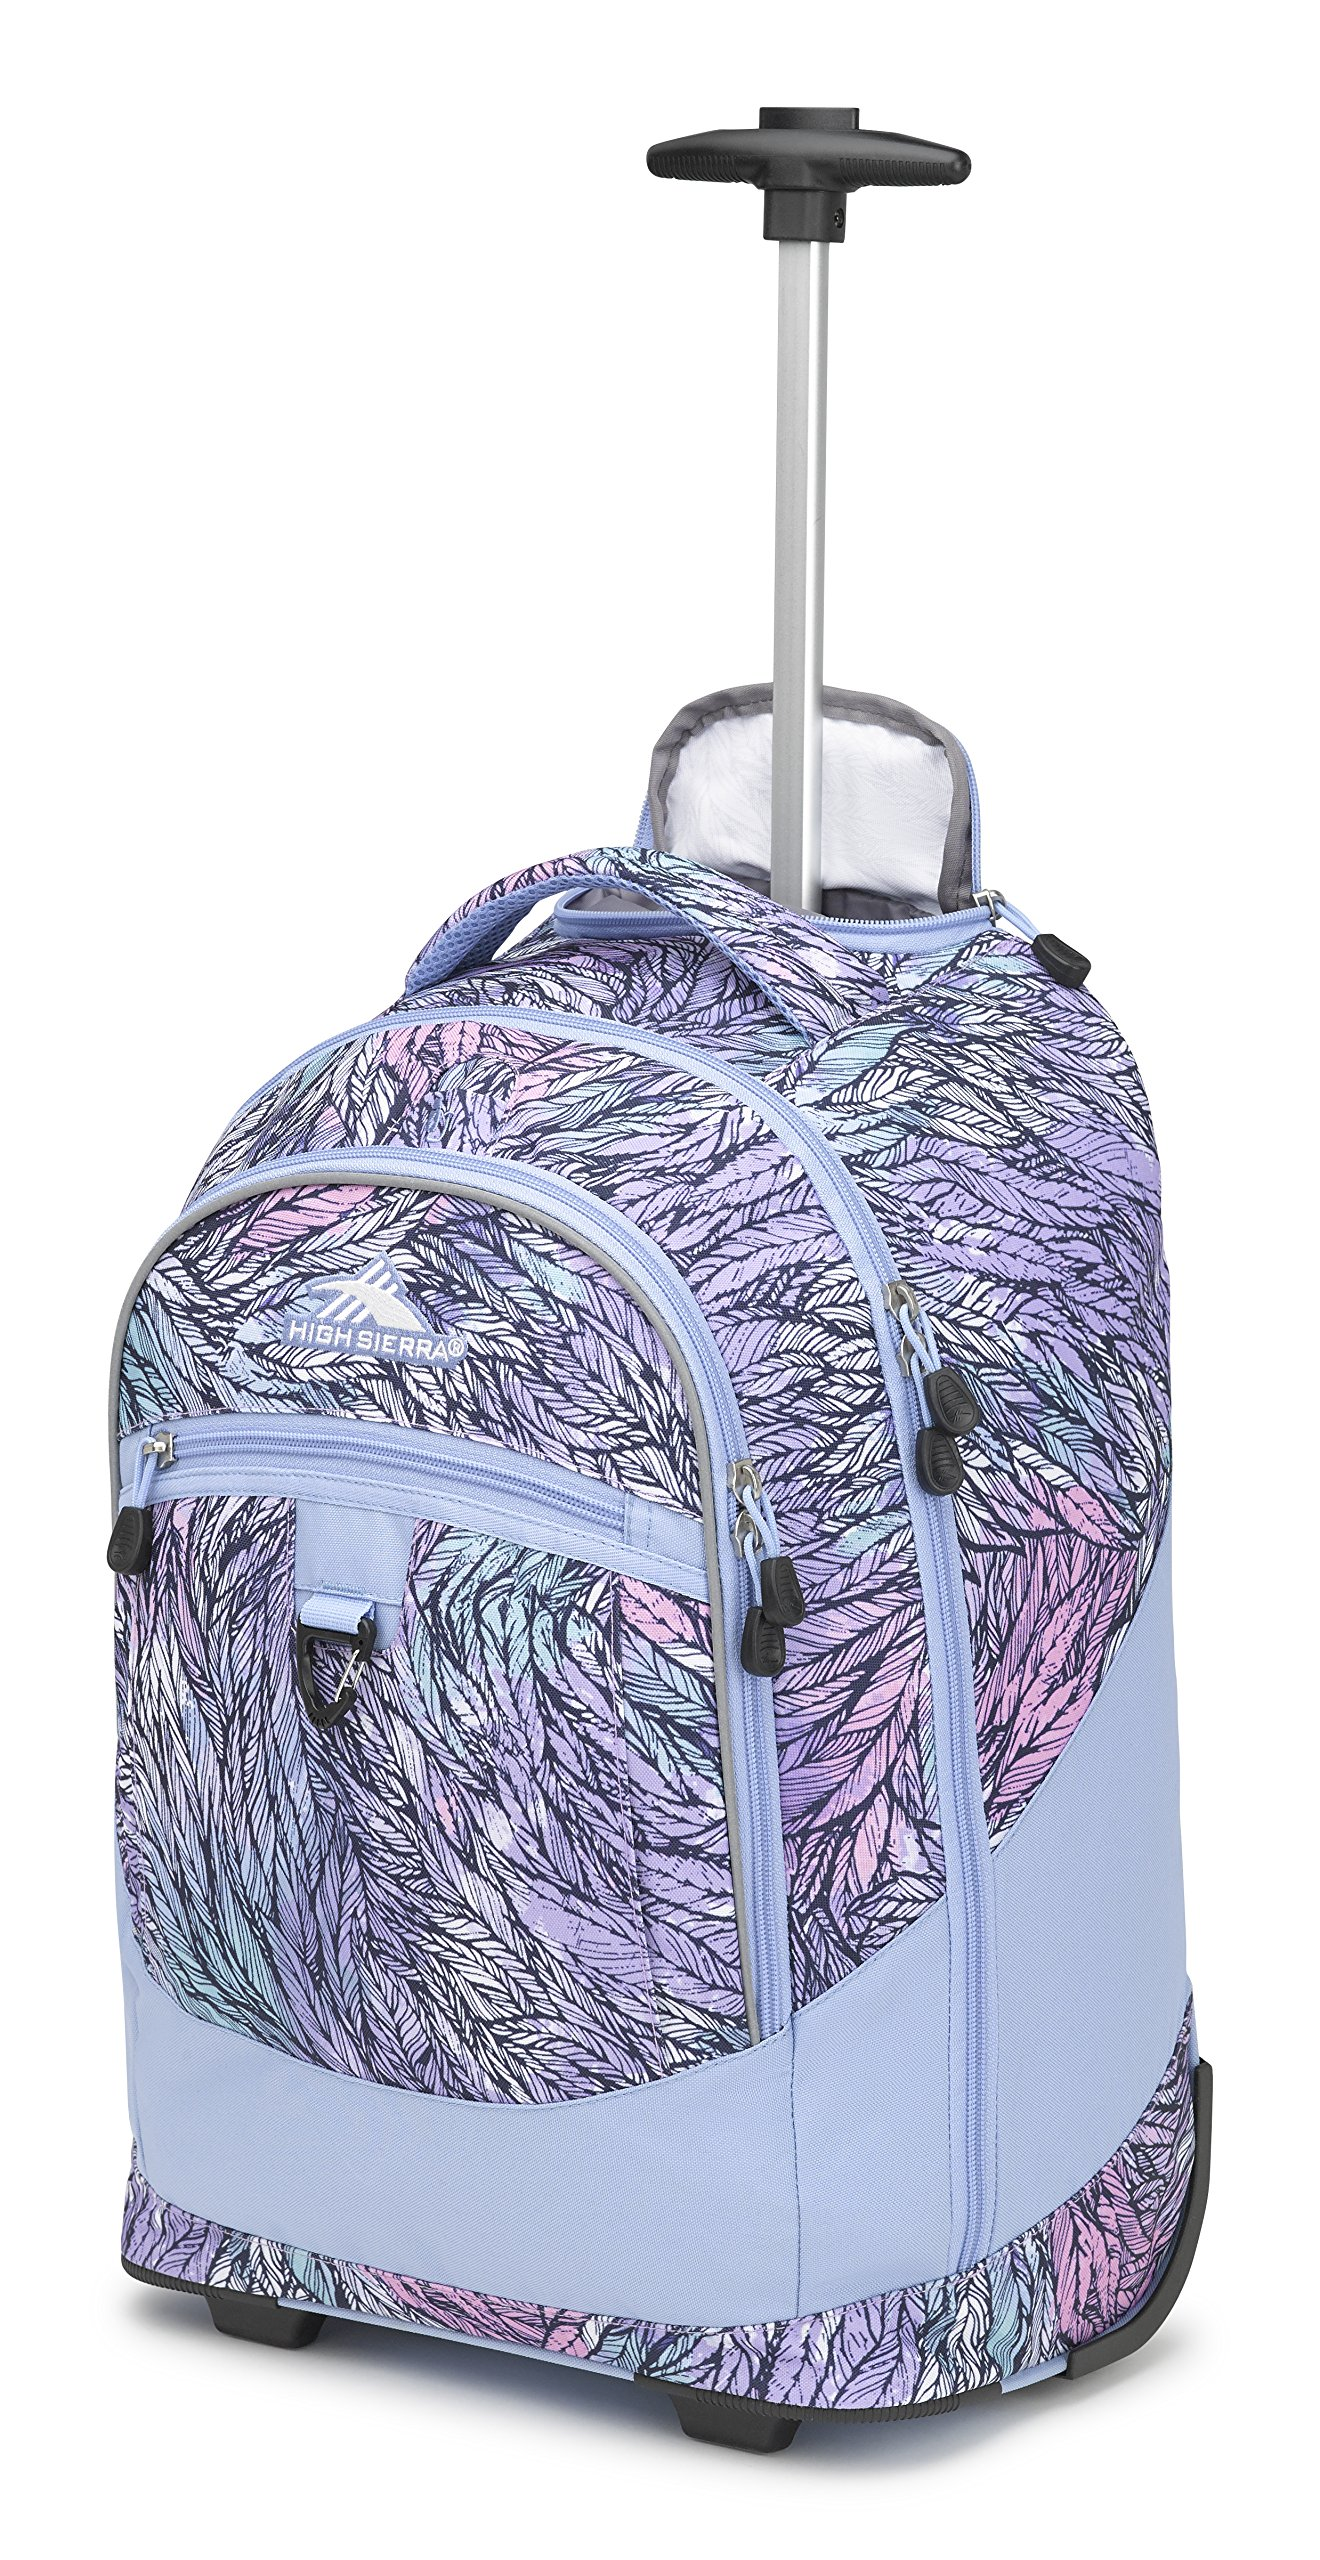 High Sierra Chaser Wheeled Laptop Backpack, Feather Spectre/Powder Blue